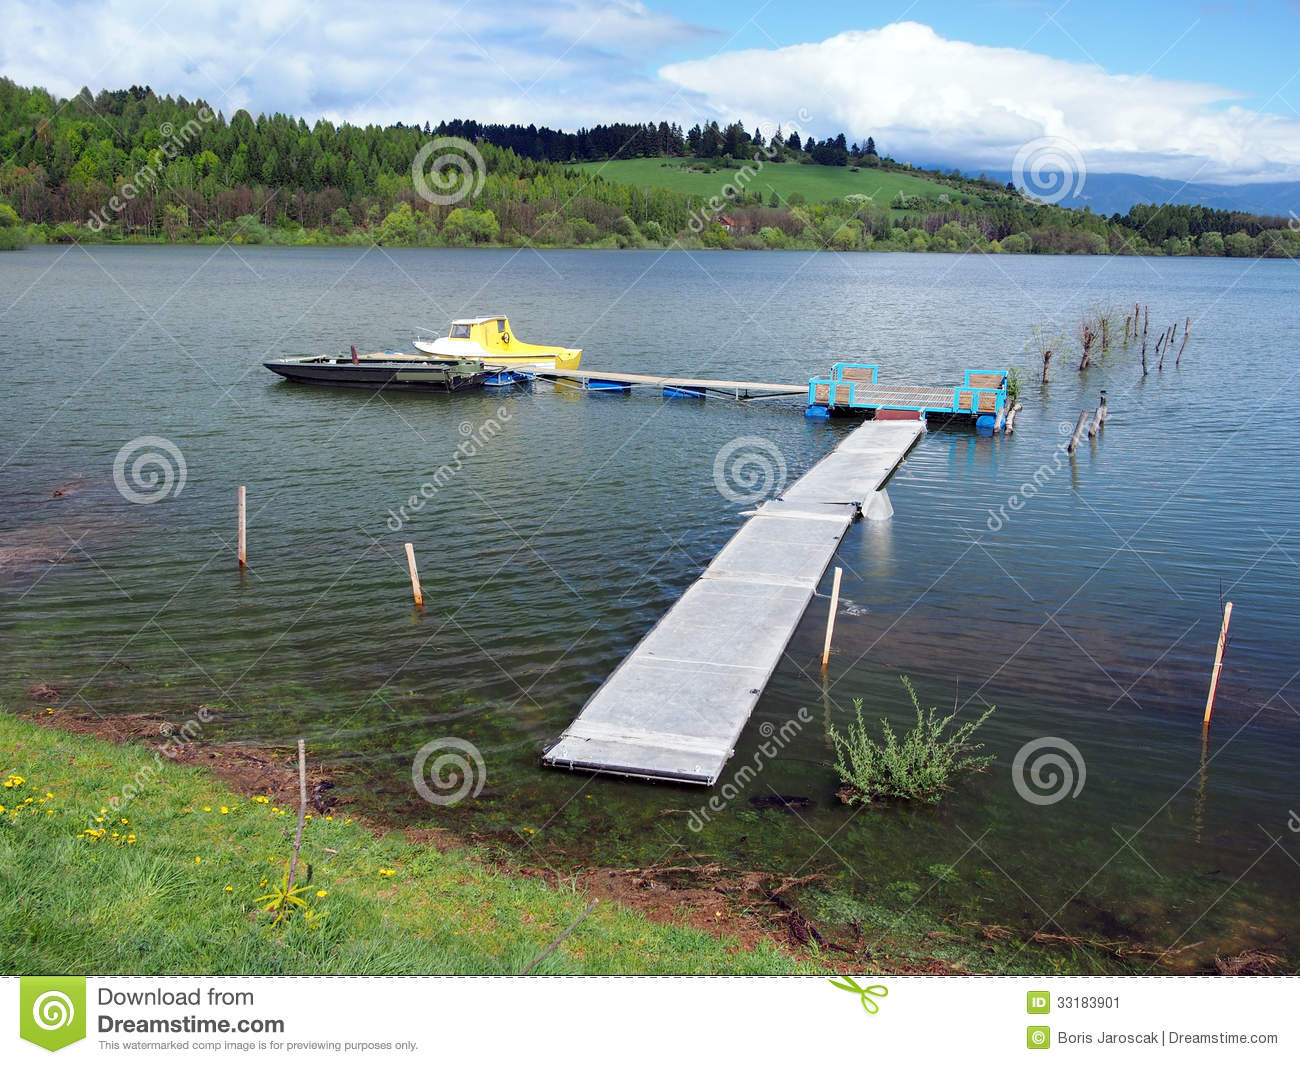 Download Pier And Boats On Liptovska Mara, Slovakia Stock Image - Image of nobody, anchored: 33183901